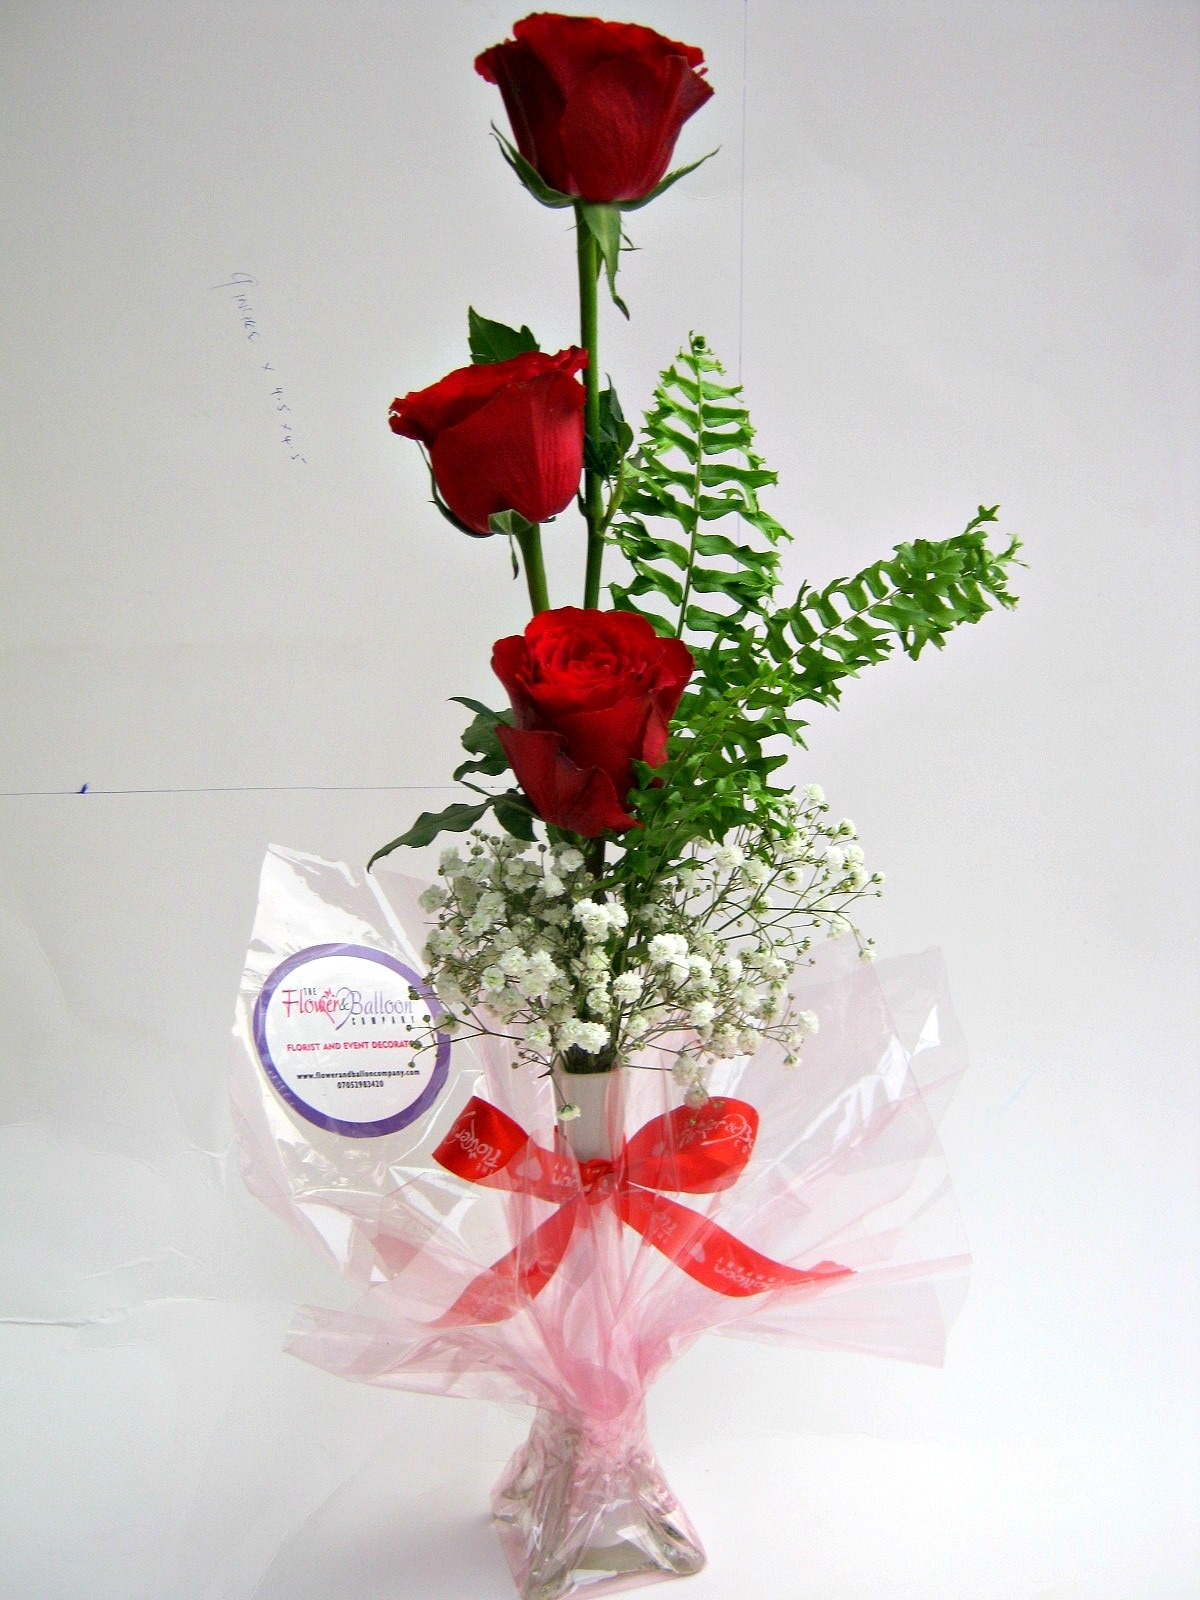 Flowerandballooncompany blog archive simple elegance 3 flower giftred roses3 stem red roses and gypsorose in vase floridaeventfo Choice Image